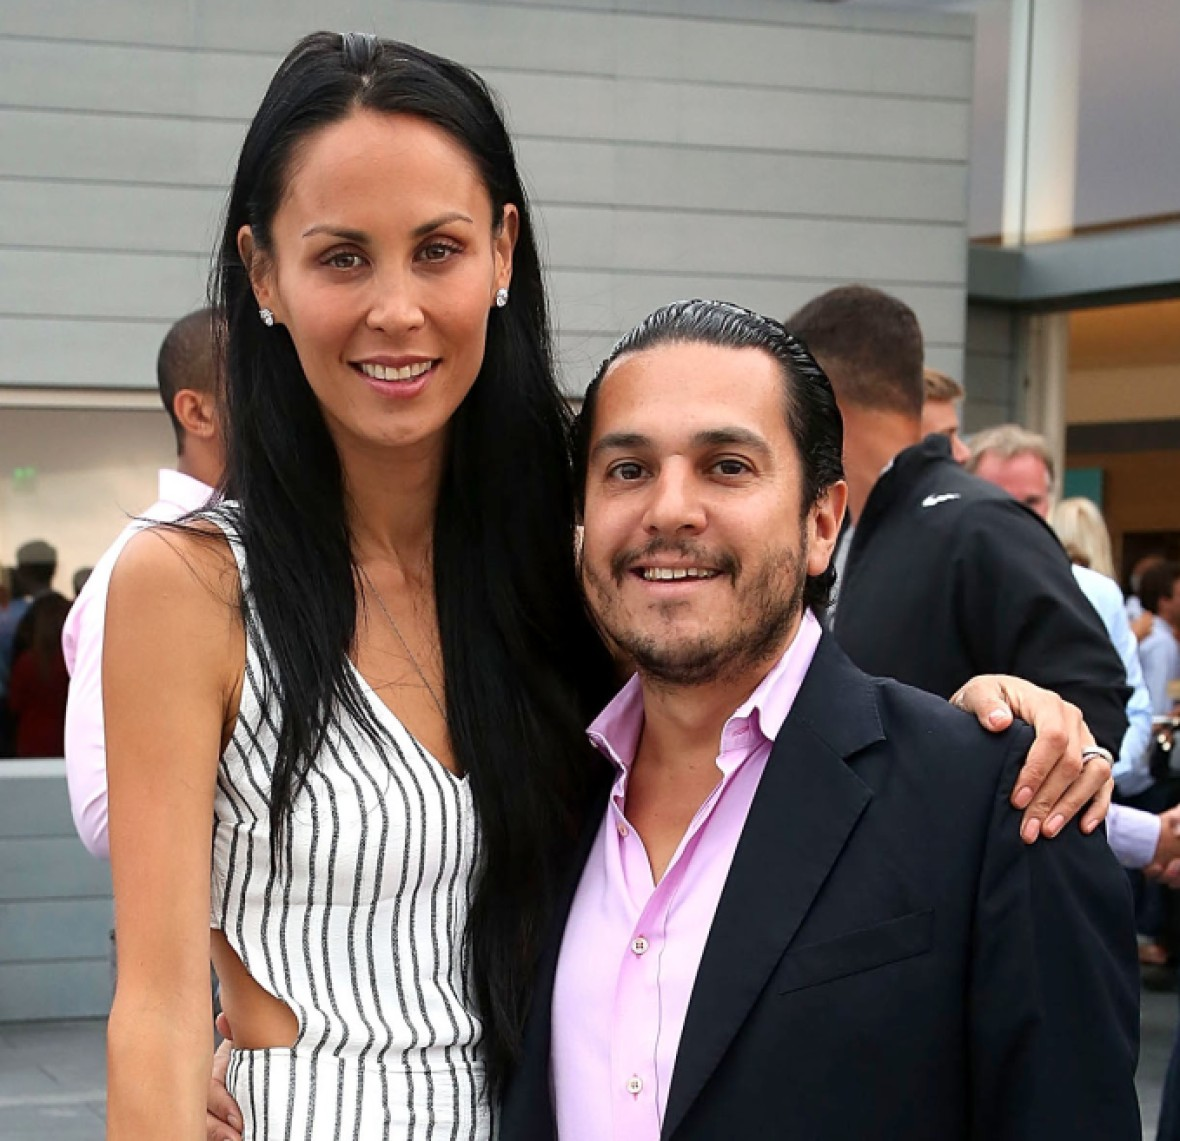 jules michael wainstein getty images